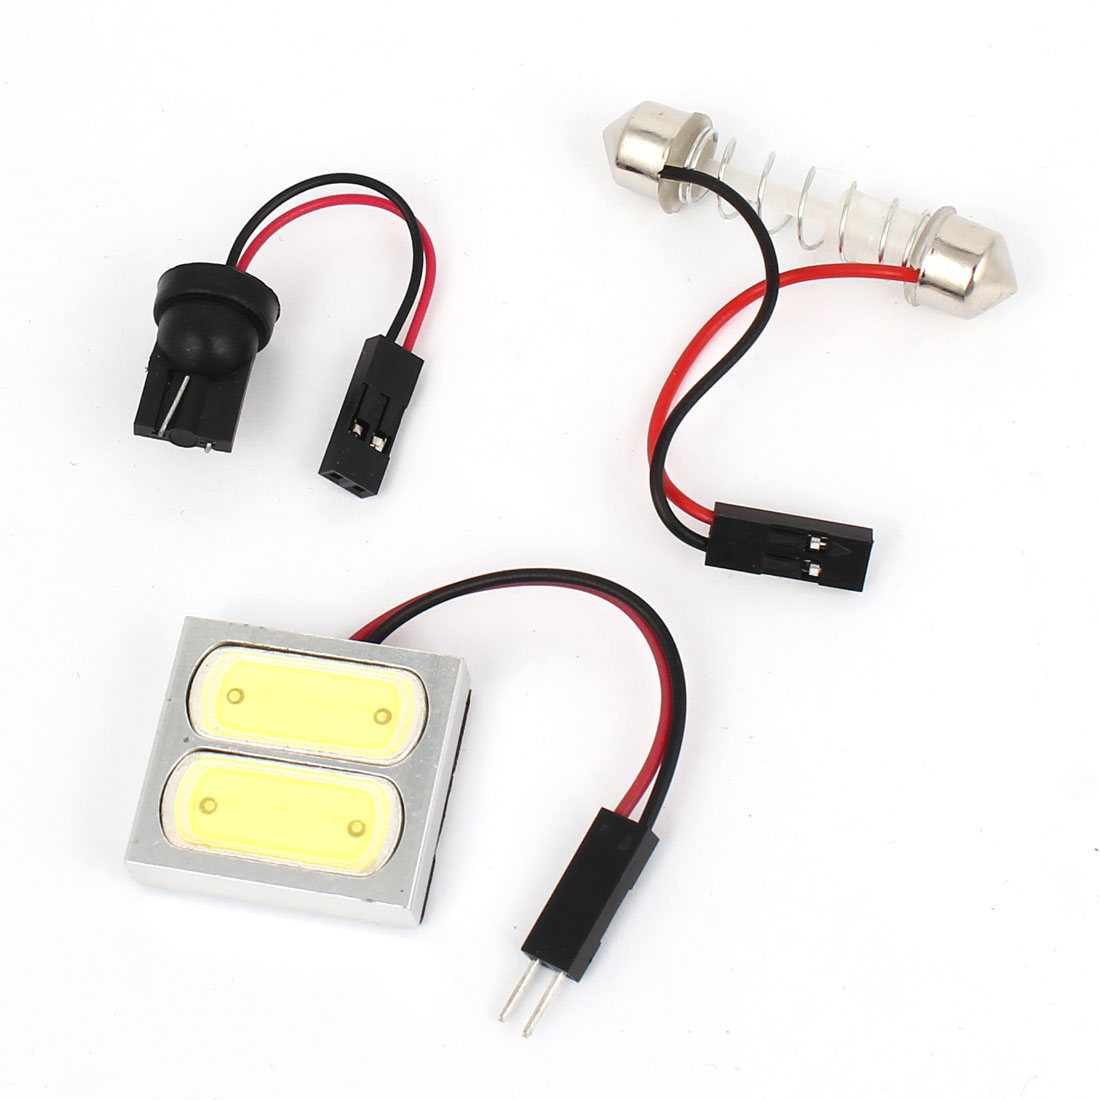 DC 12V 3W Car Interior White 2 LED Roof Dome Light T10 Festoon Adapter Internal